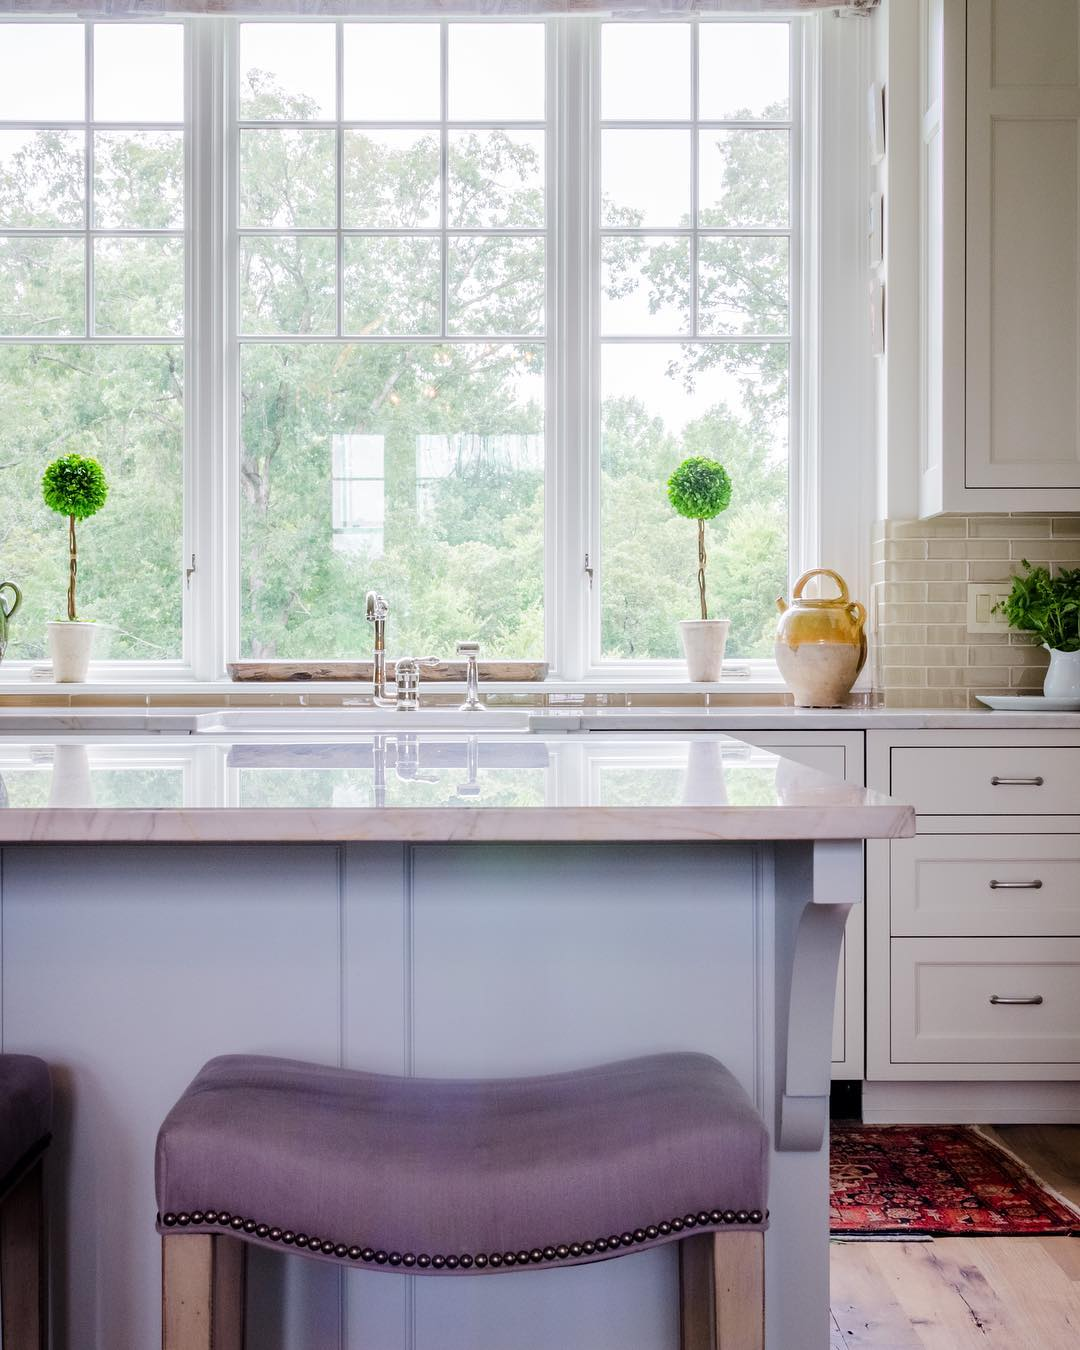 casement window with traditional grille pattern over sink in white on white kitchen